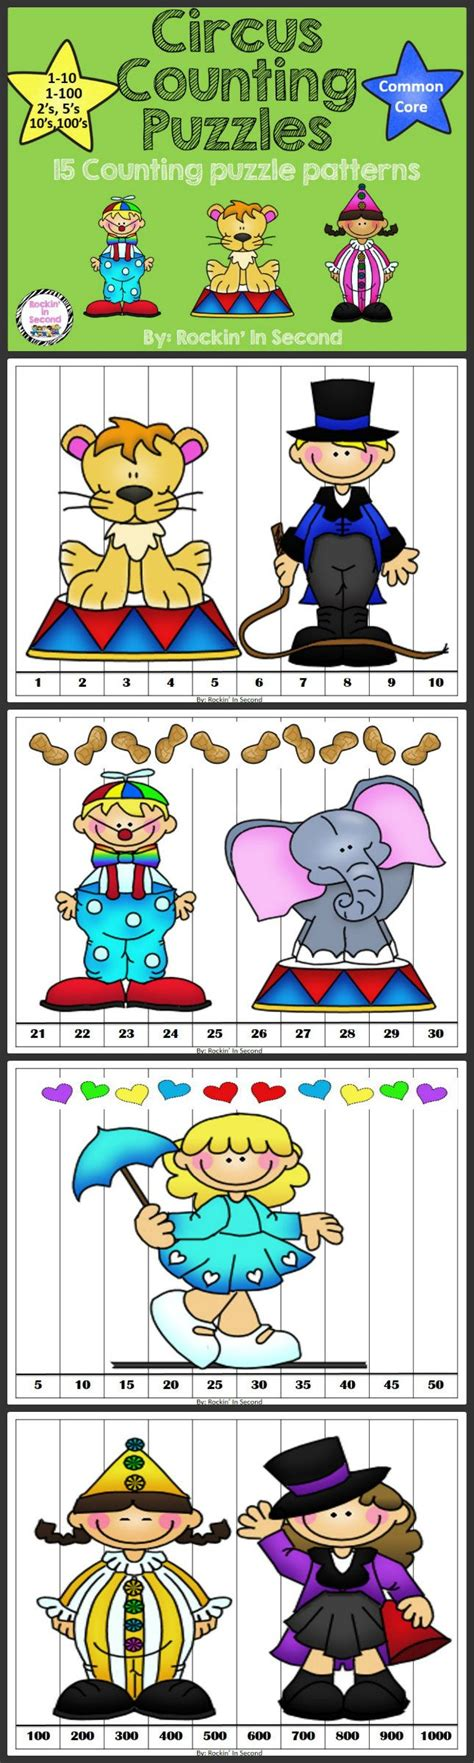 Thematic Magnet Puzzle Circus 17 best images about circus on circus clown circus preschool themes and activities